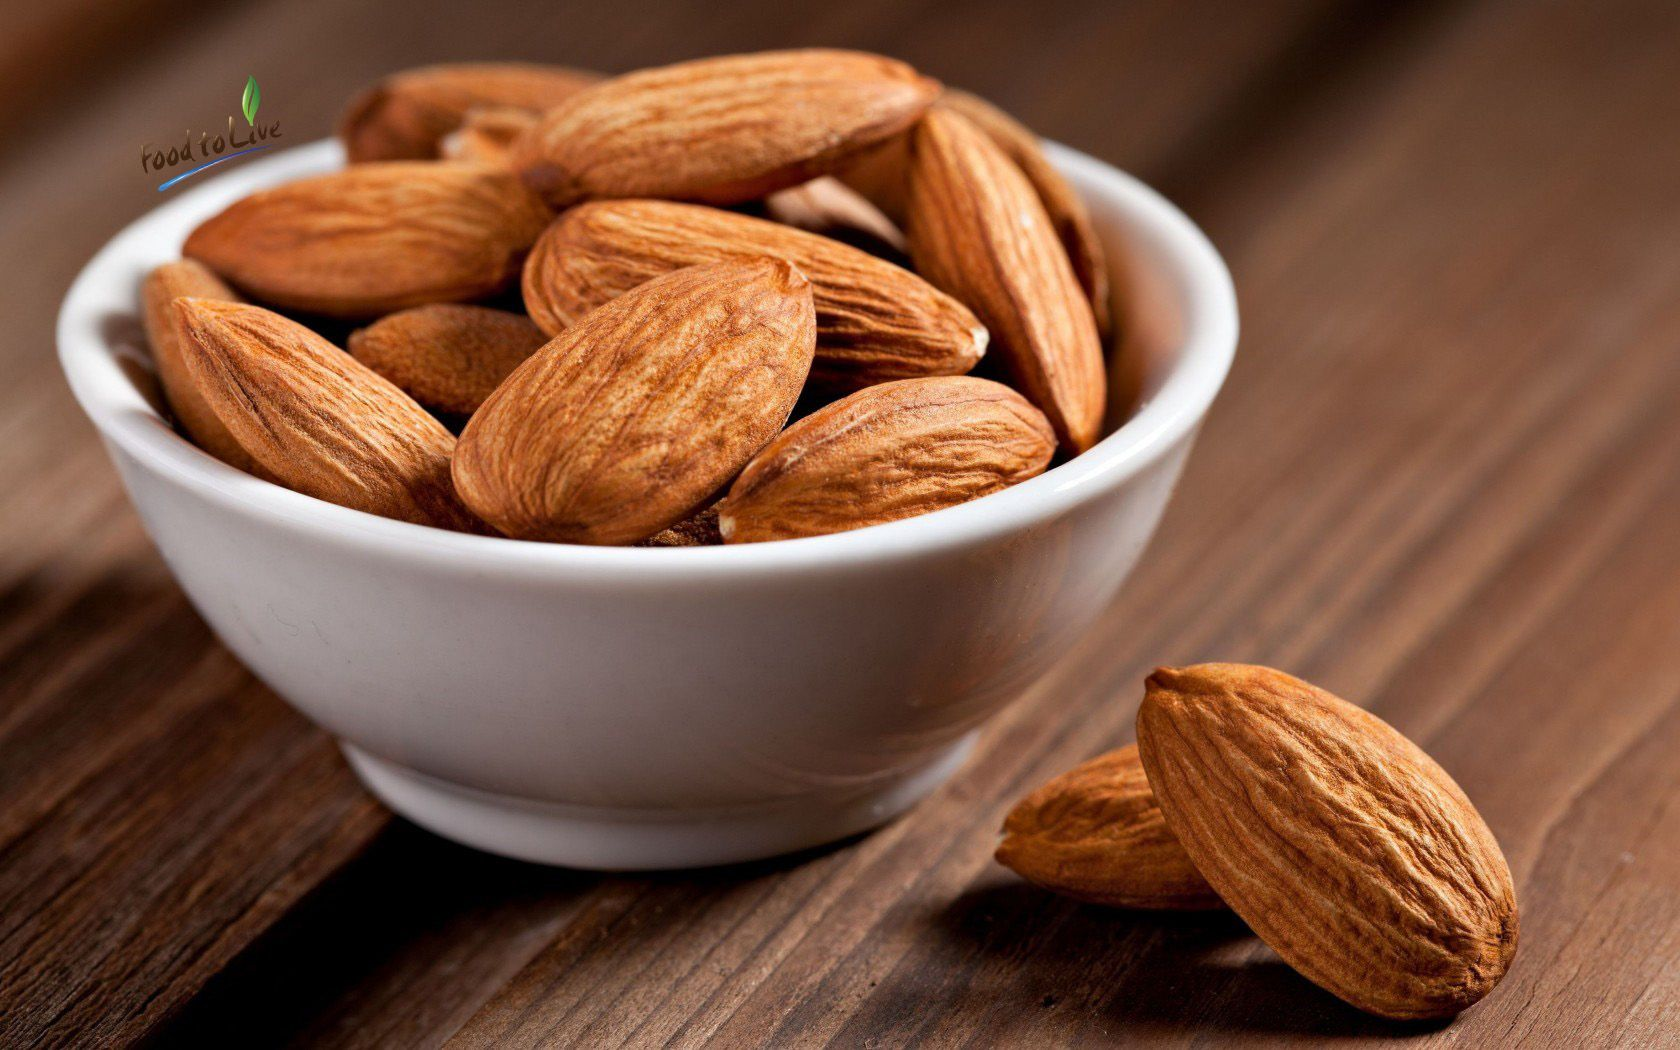 An extremely high content of vitamin E makes almonds an effective beauty tool. This element is essential for maintaining the strength and integrity of cell membranes. Therefore, it can make our skin more elastic and smooth, and your hair and nails – stronger. #RawNuts #Almonds #Vitamins #Food2Live